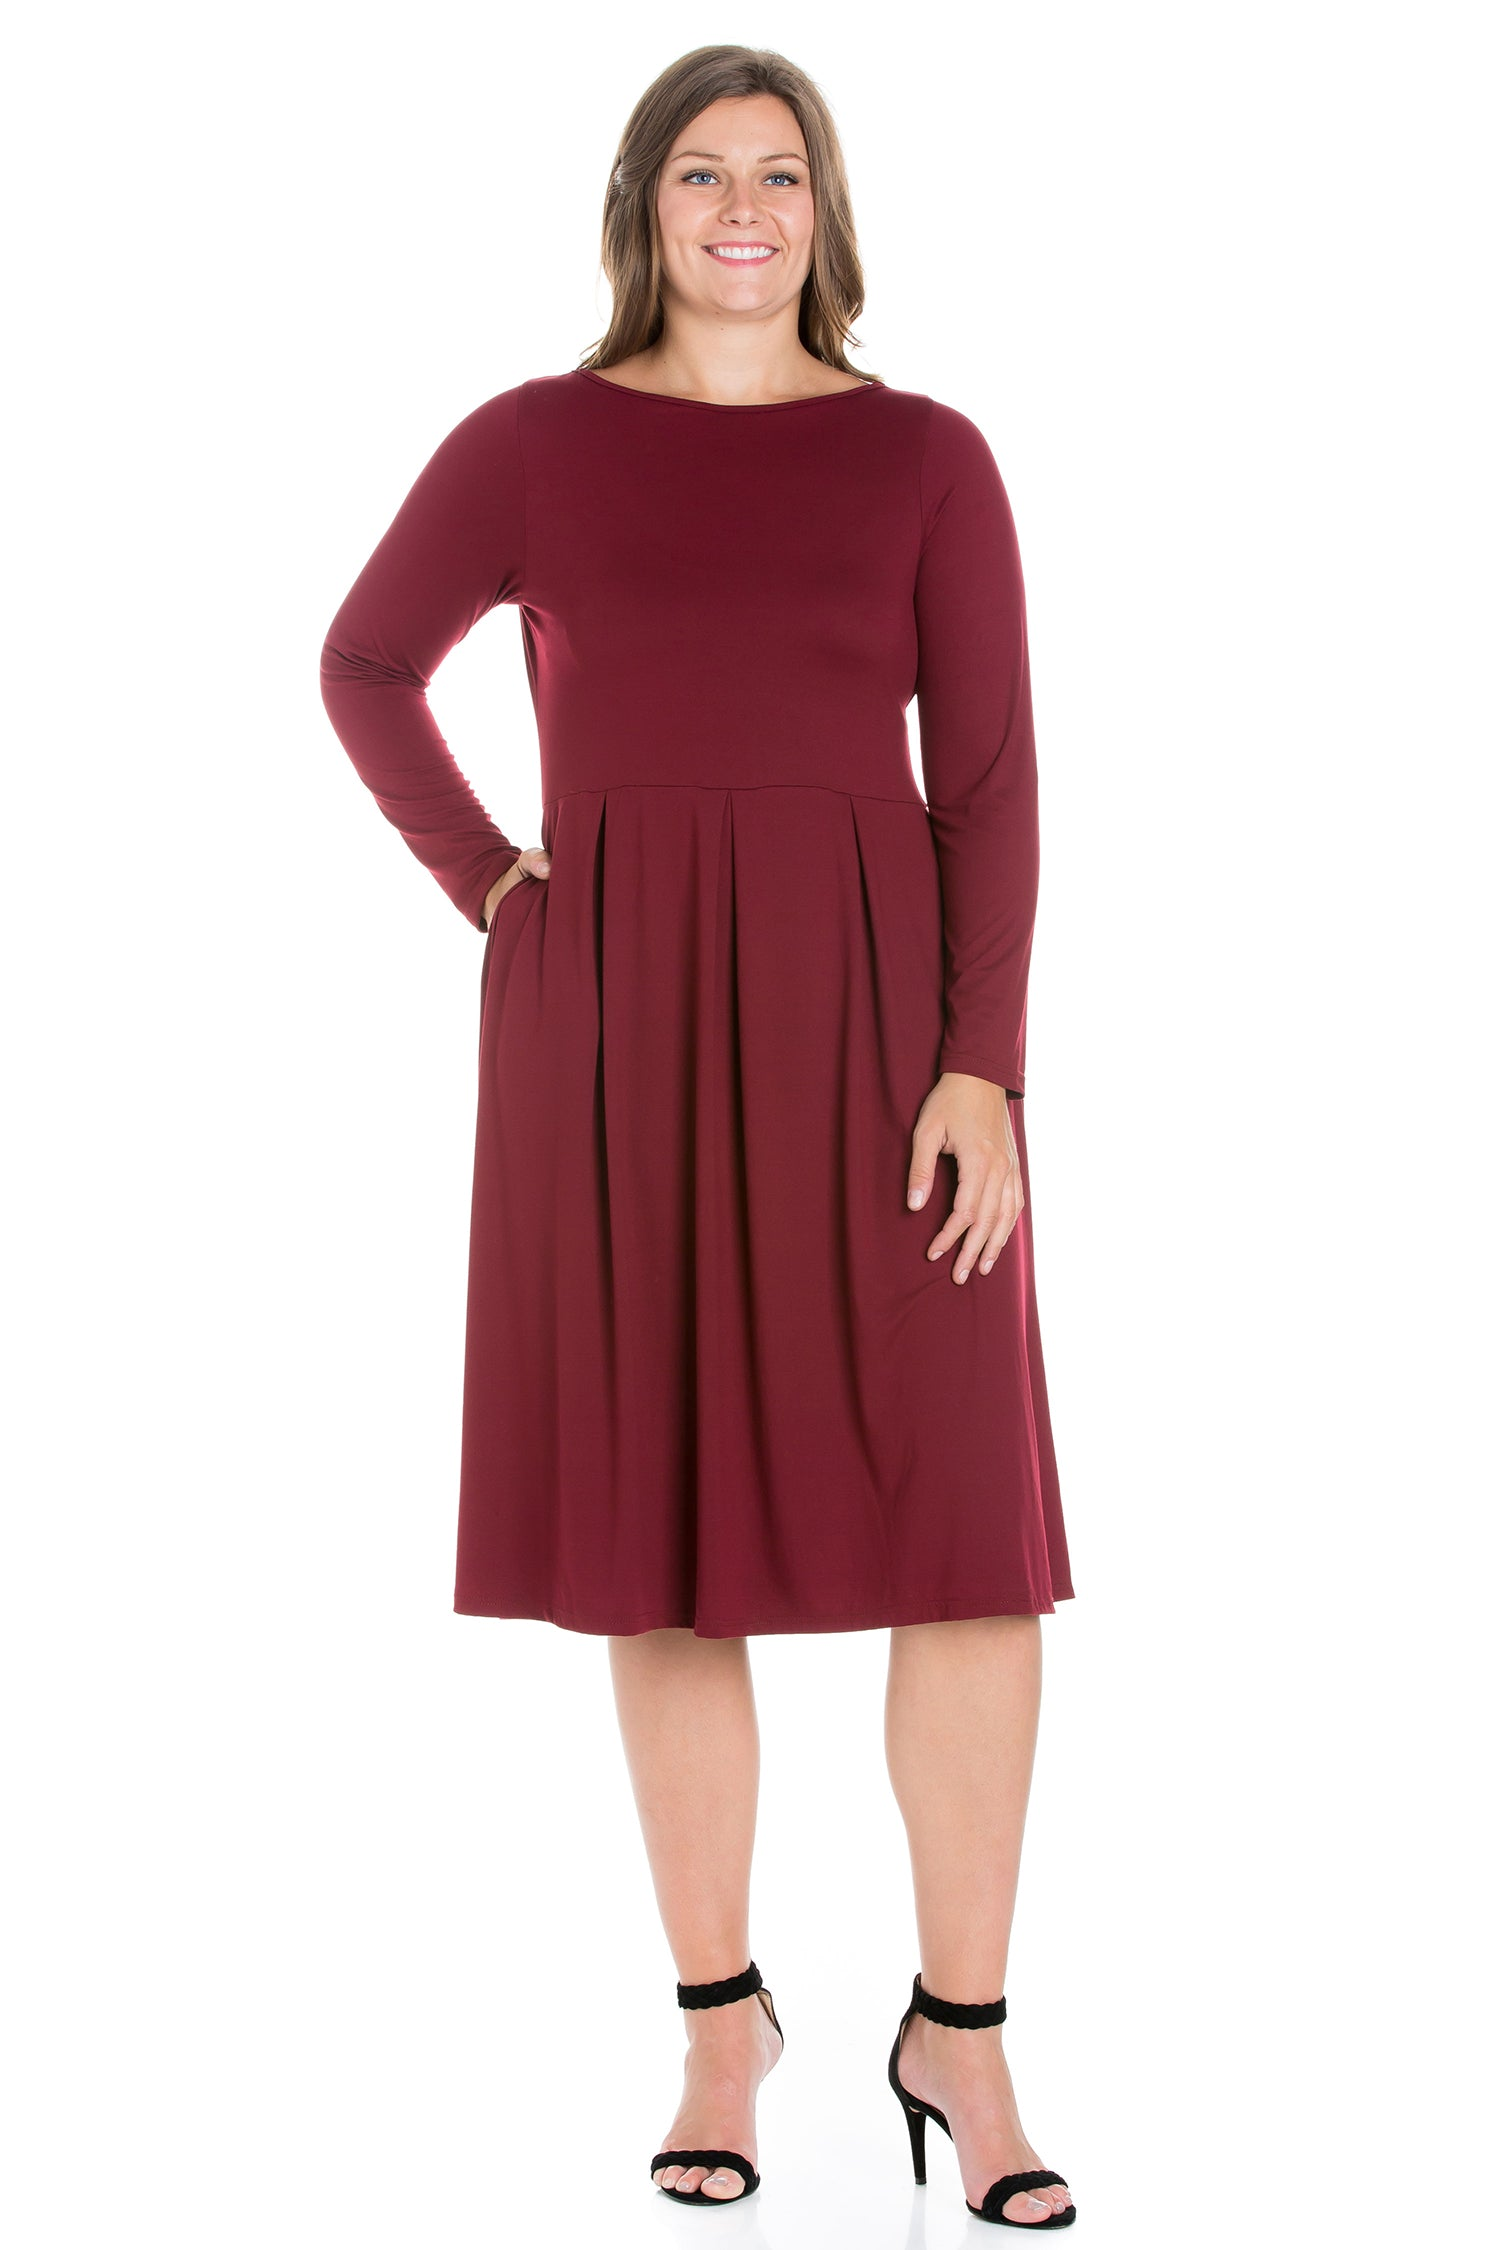 24seven Comfort Apparel Long Sleeve Fit and Flare Plus Size Midi Dress-DRESSES-24Seven Comfort Apparel-WINE-1X-24/7 Comfort Apparel